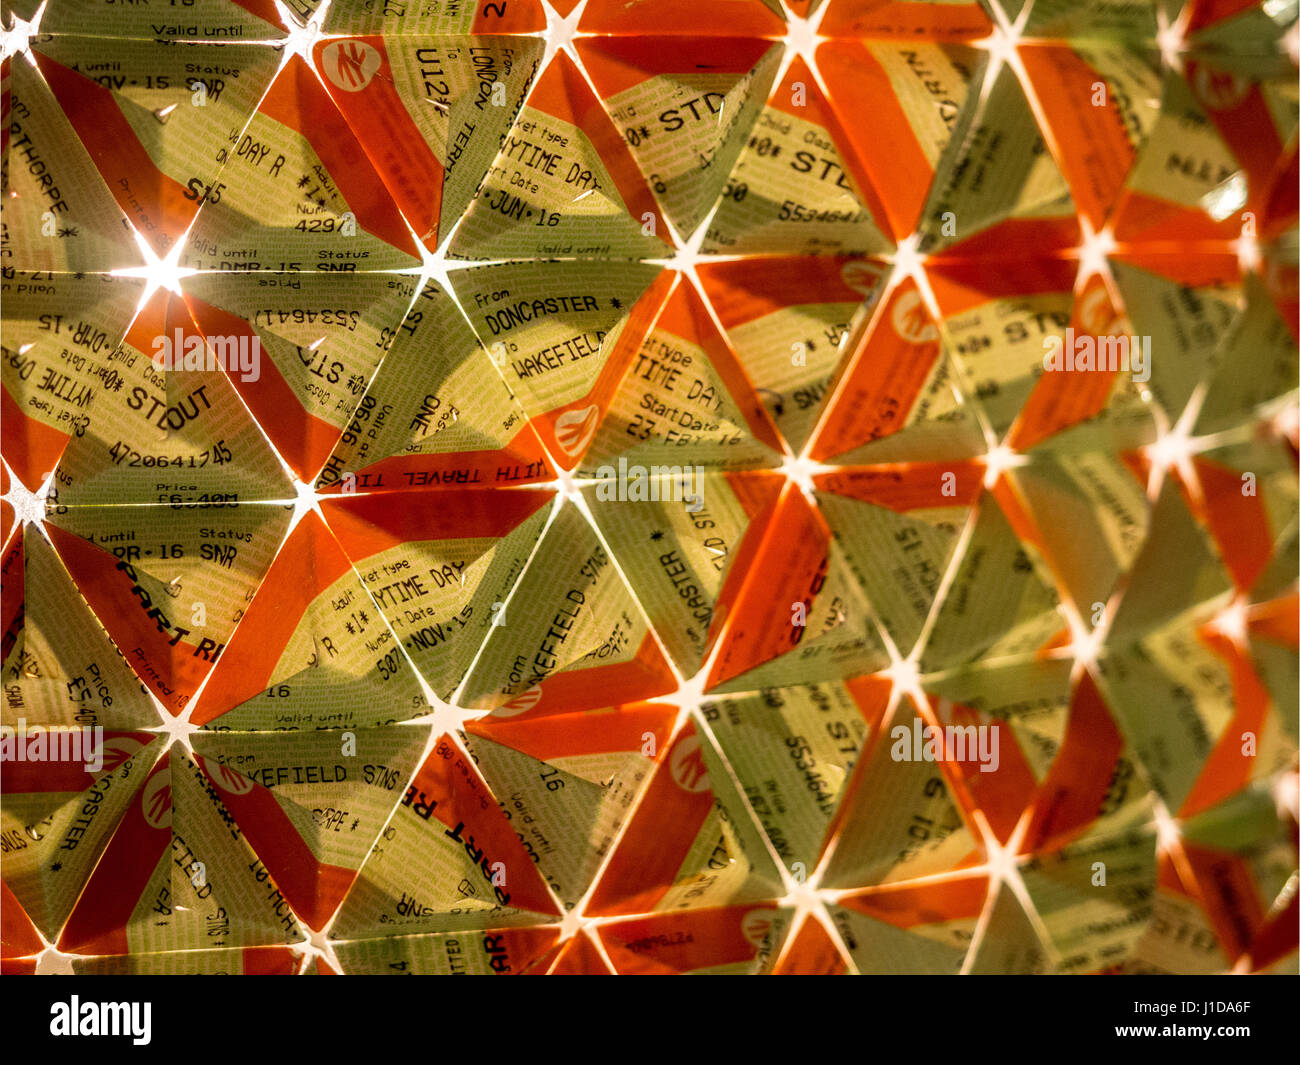 Close up of train tickets folded into triangular pattern with light shining through from behind - Stock Image